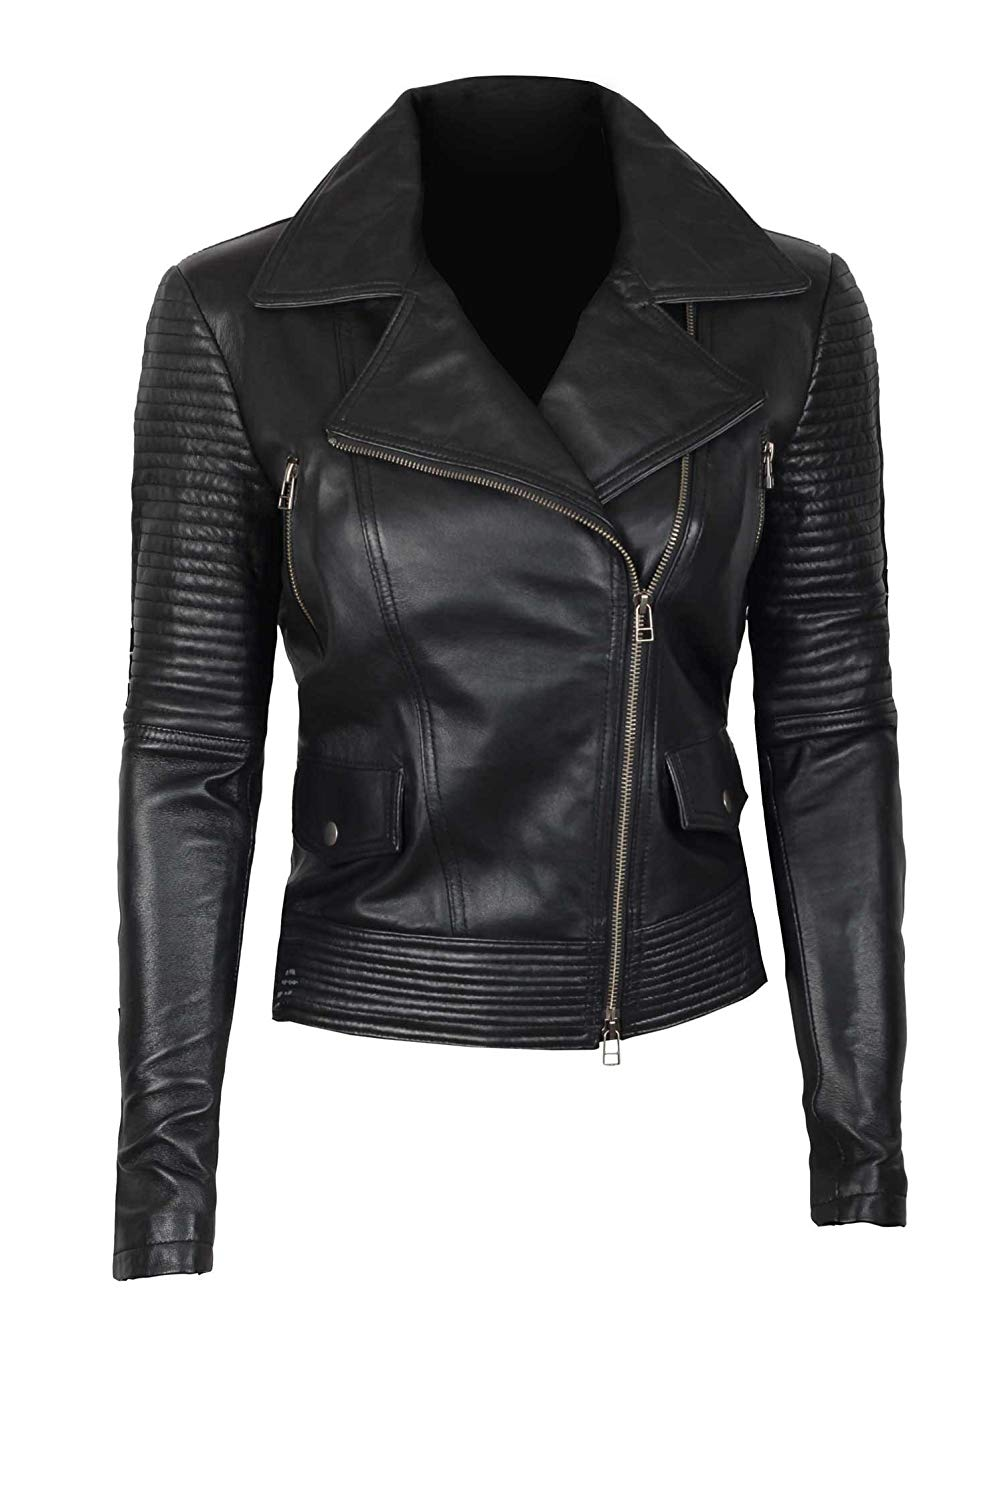 21ee3a131 Cheap Girls Wearing Leather Jackets